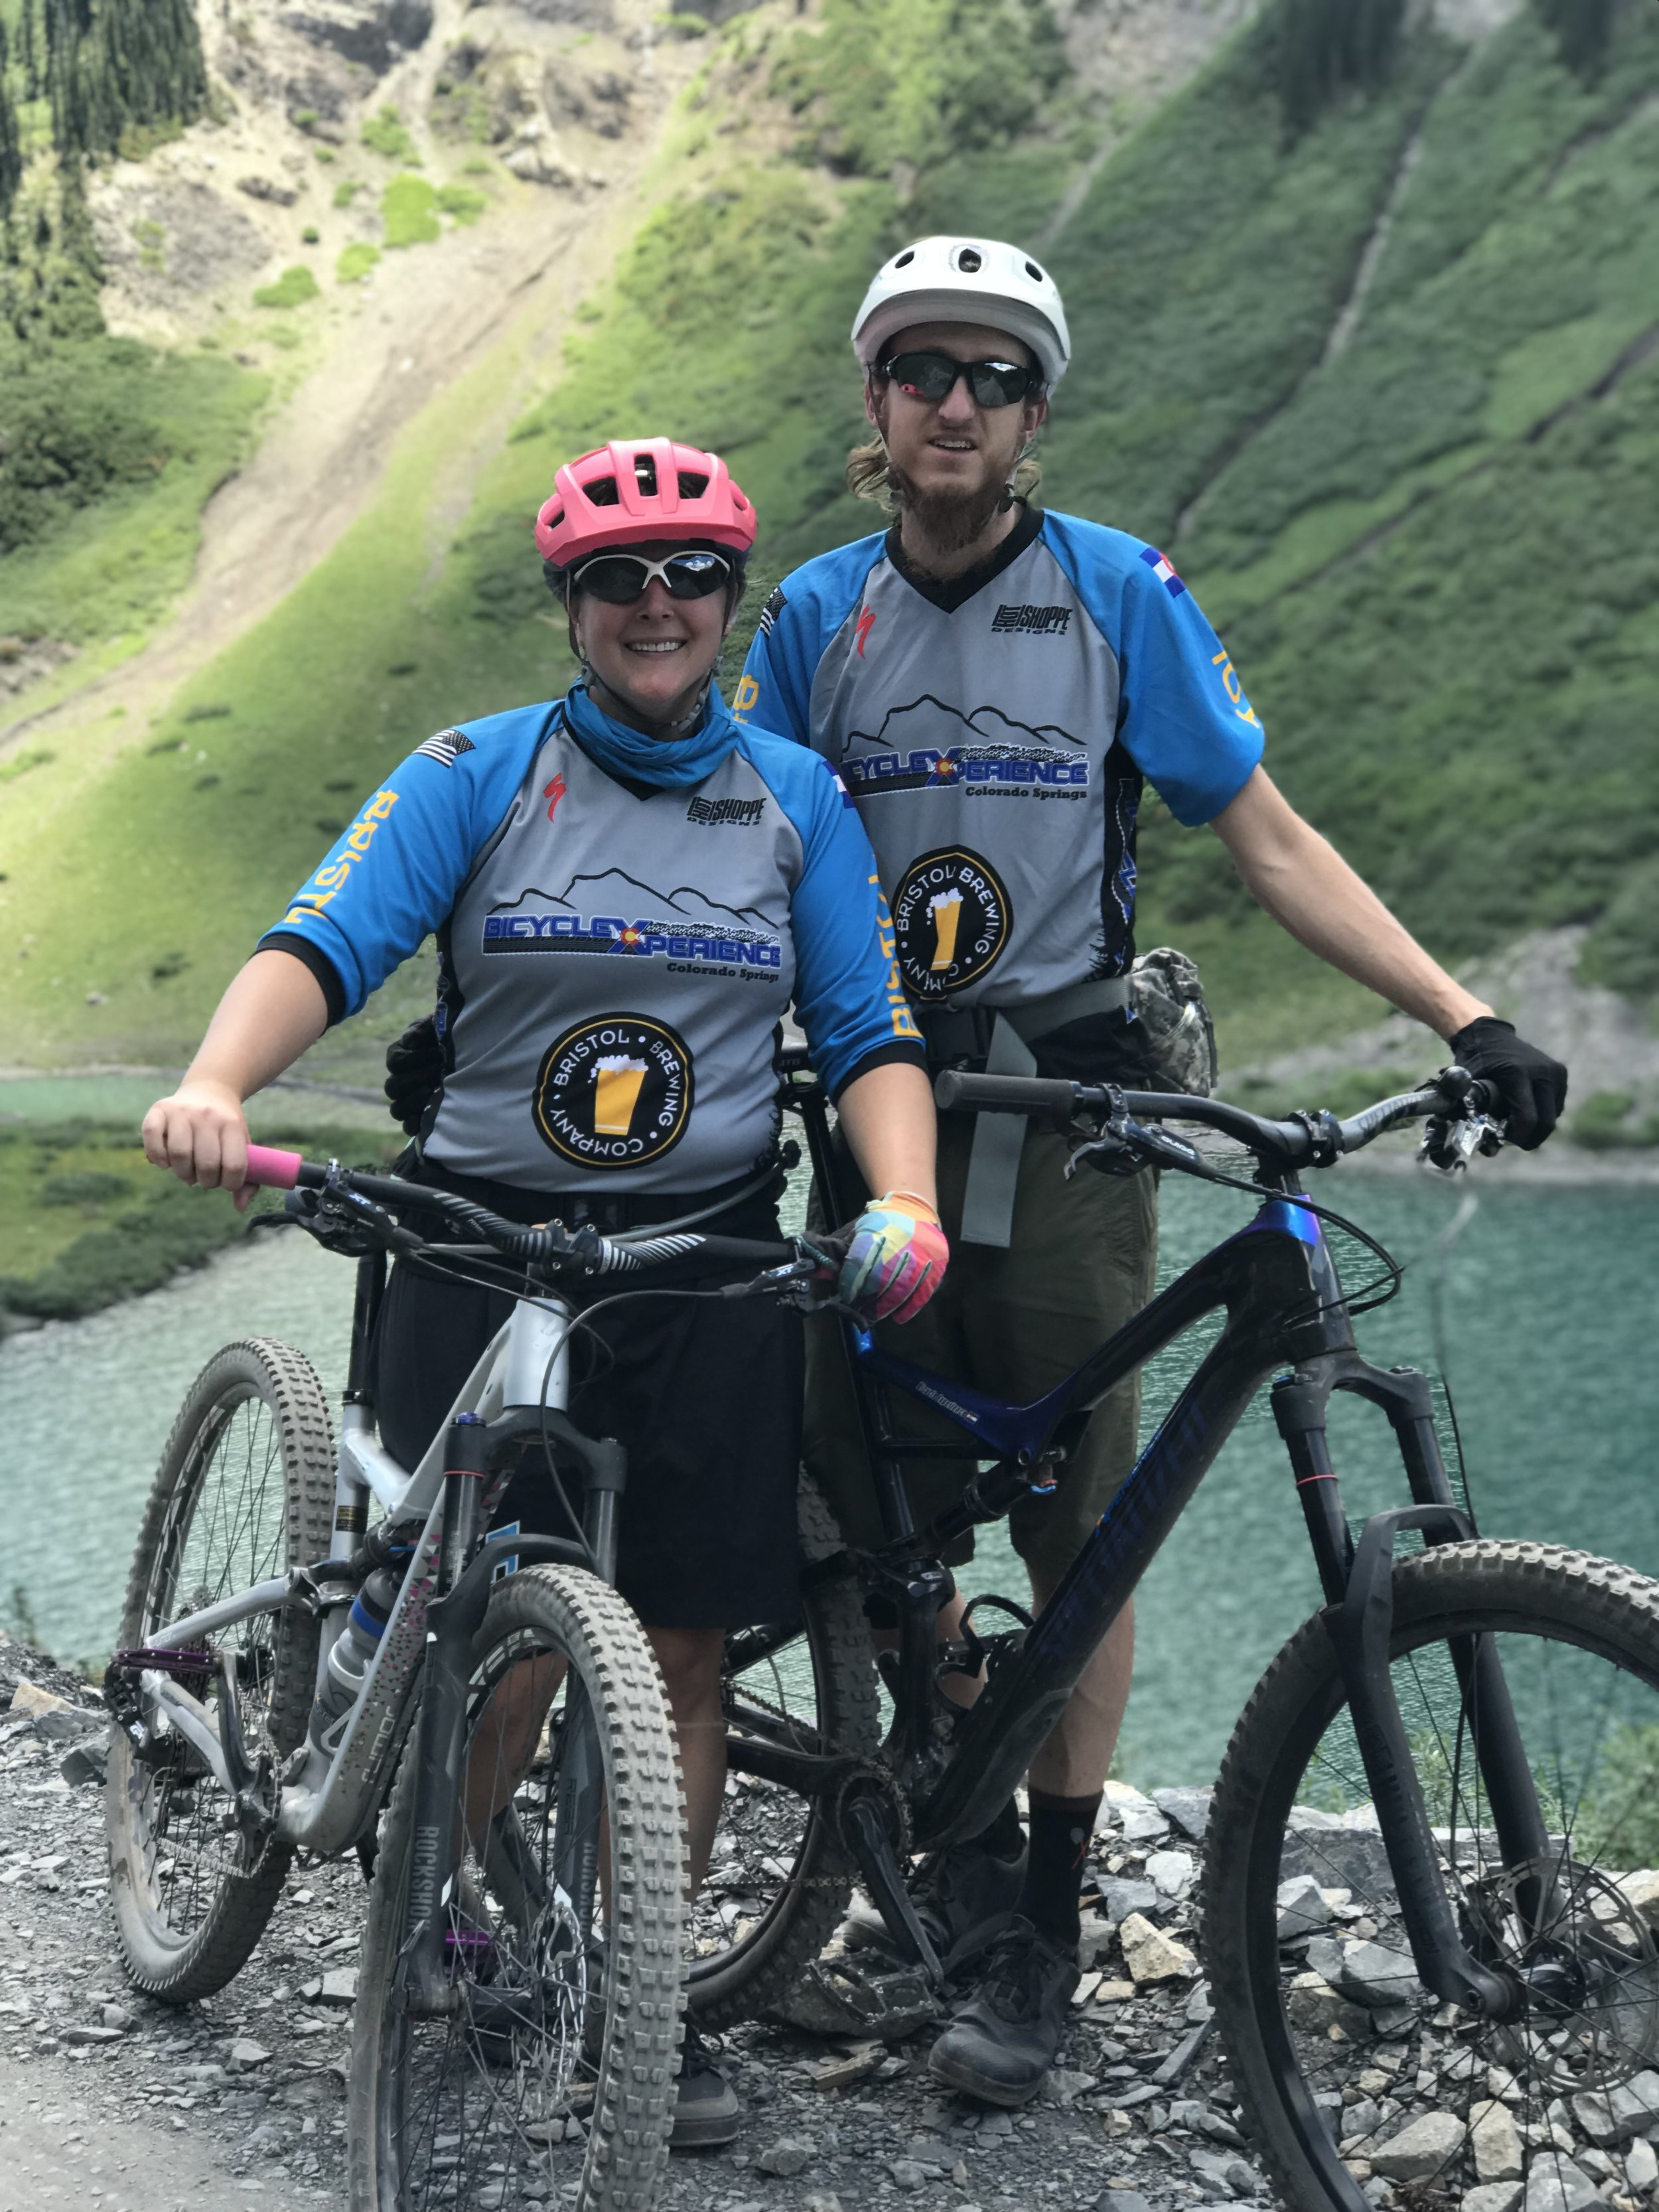 Me and my boyfriend, Nate, out for a ride in Crested Butte, Colorado.